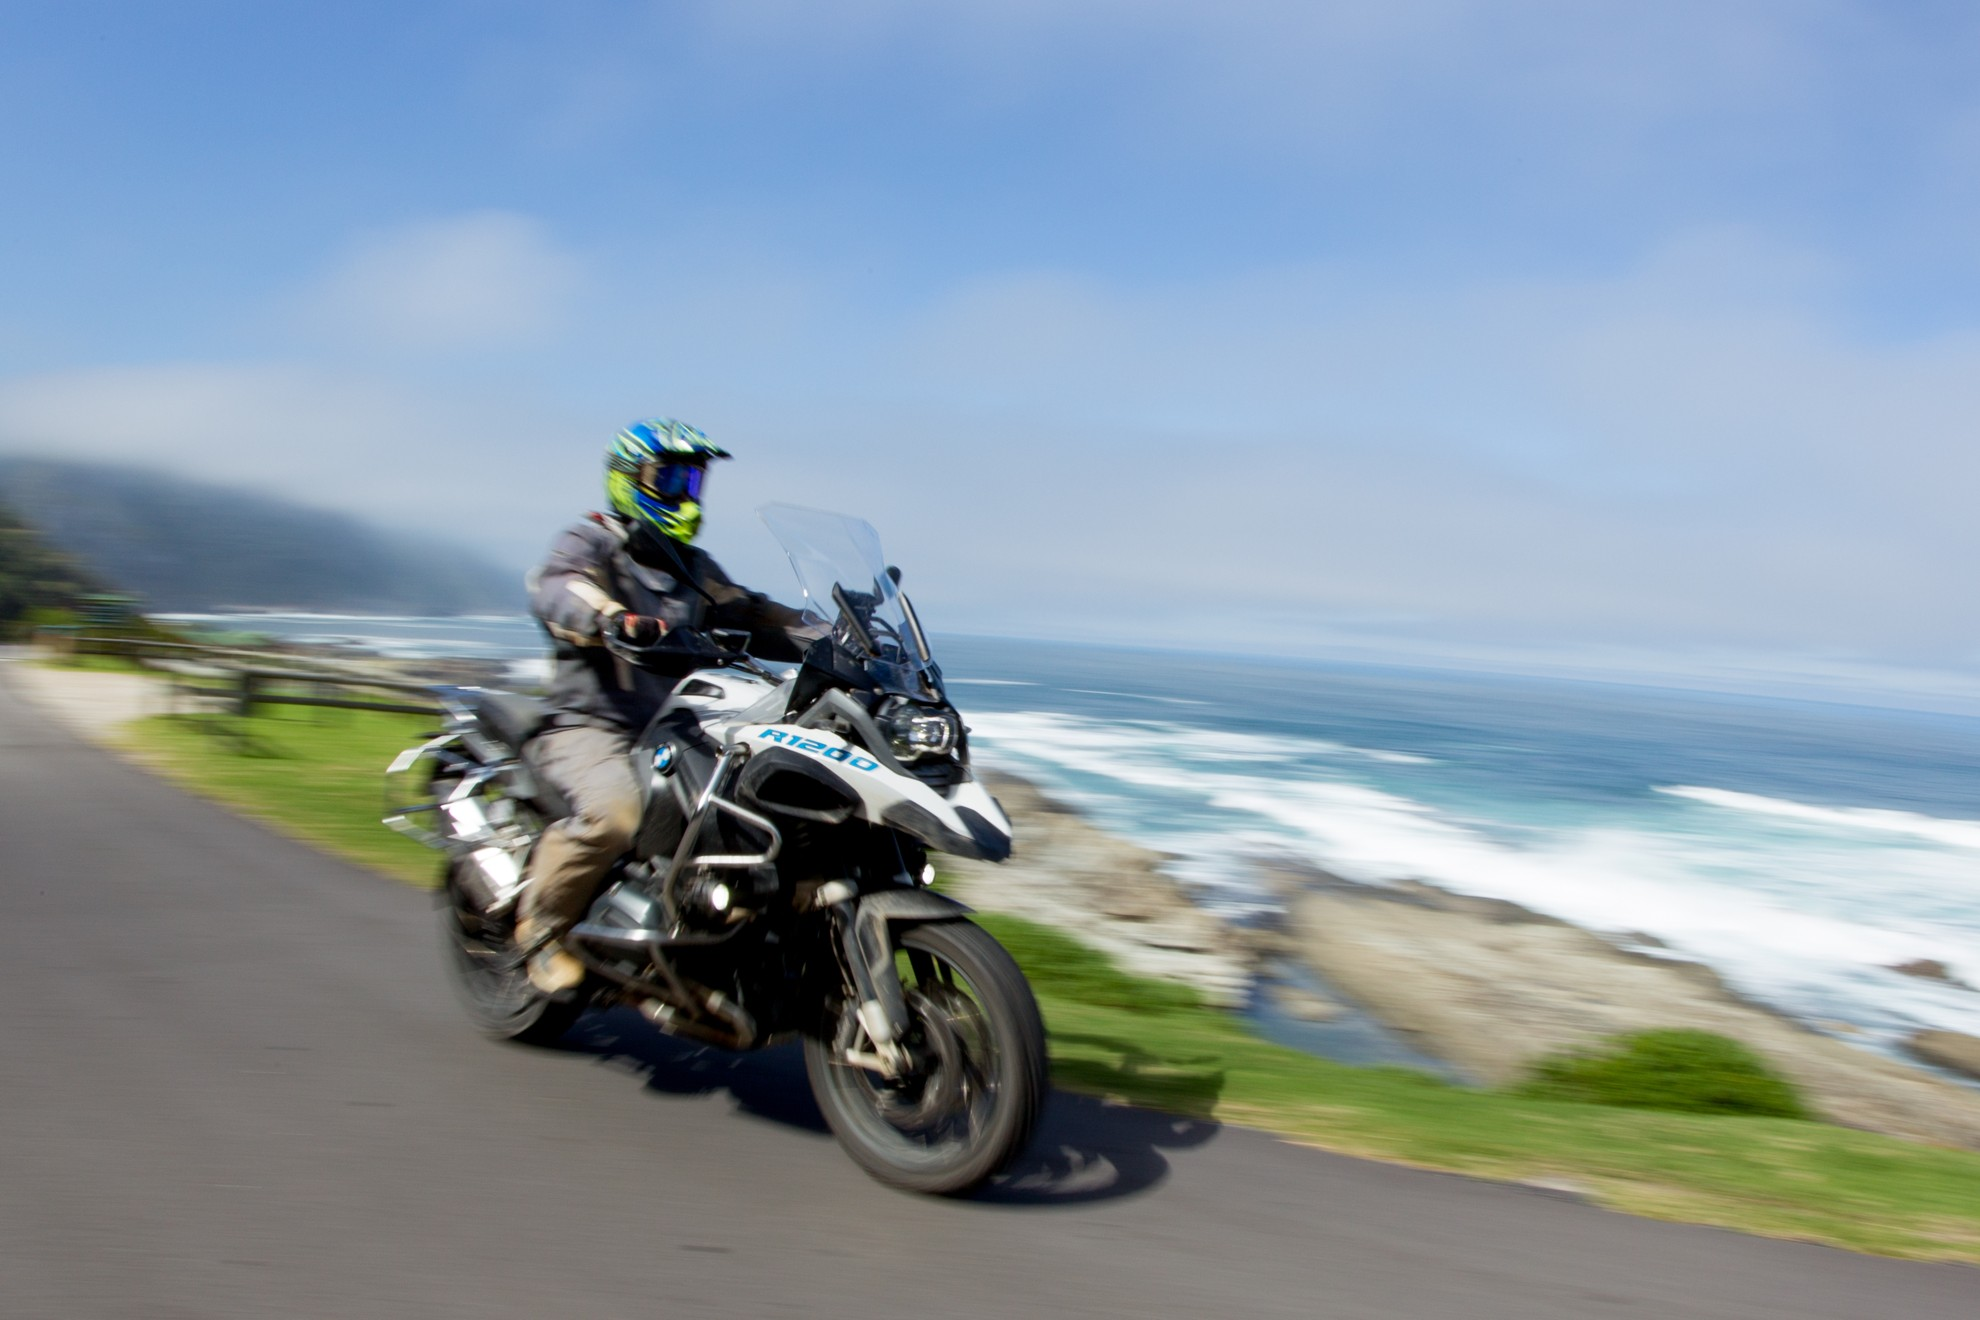 bmw r 1200 gs motorcycle adventure now on sale in south africa. Black Bedroom Furniture Sets. Home Design Ideas